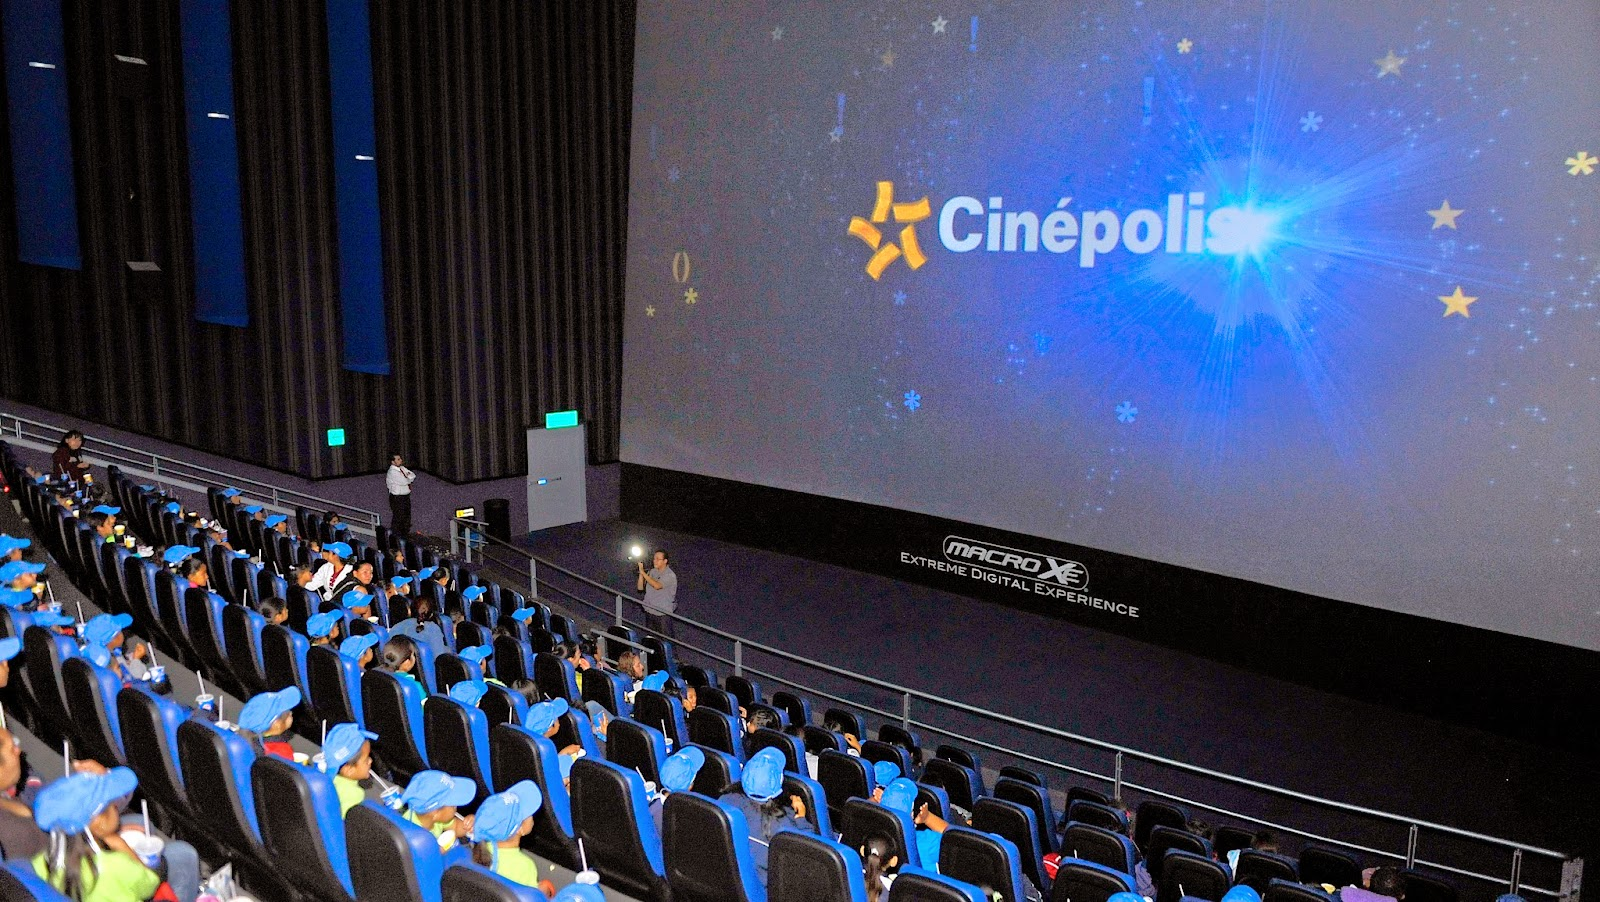 Cartelera df 19 10 14 26 10 14 for Cartelera cinepolis cd jardin